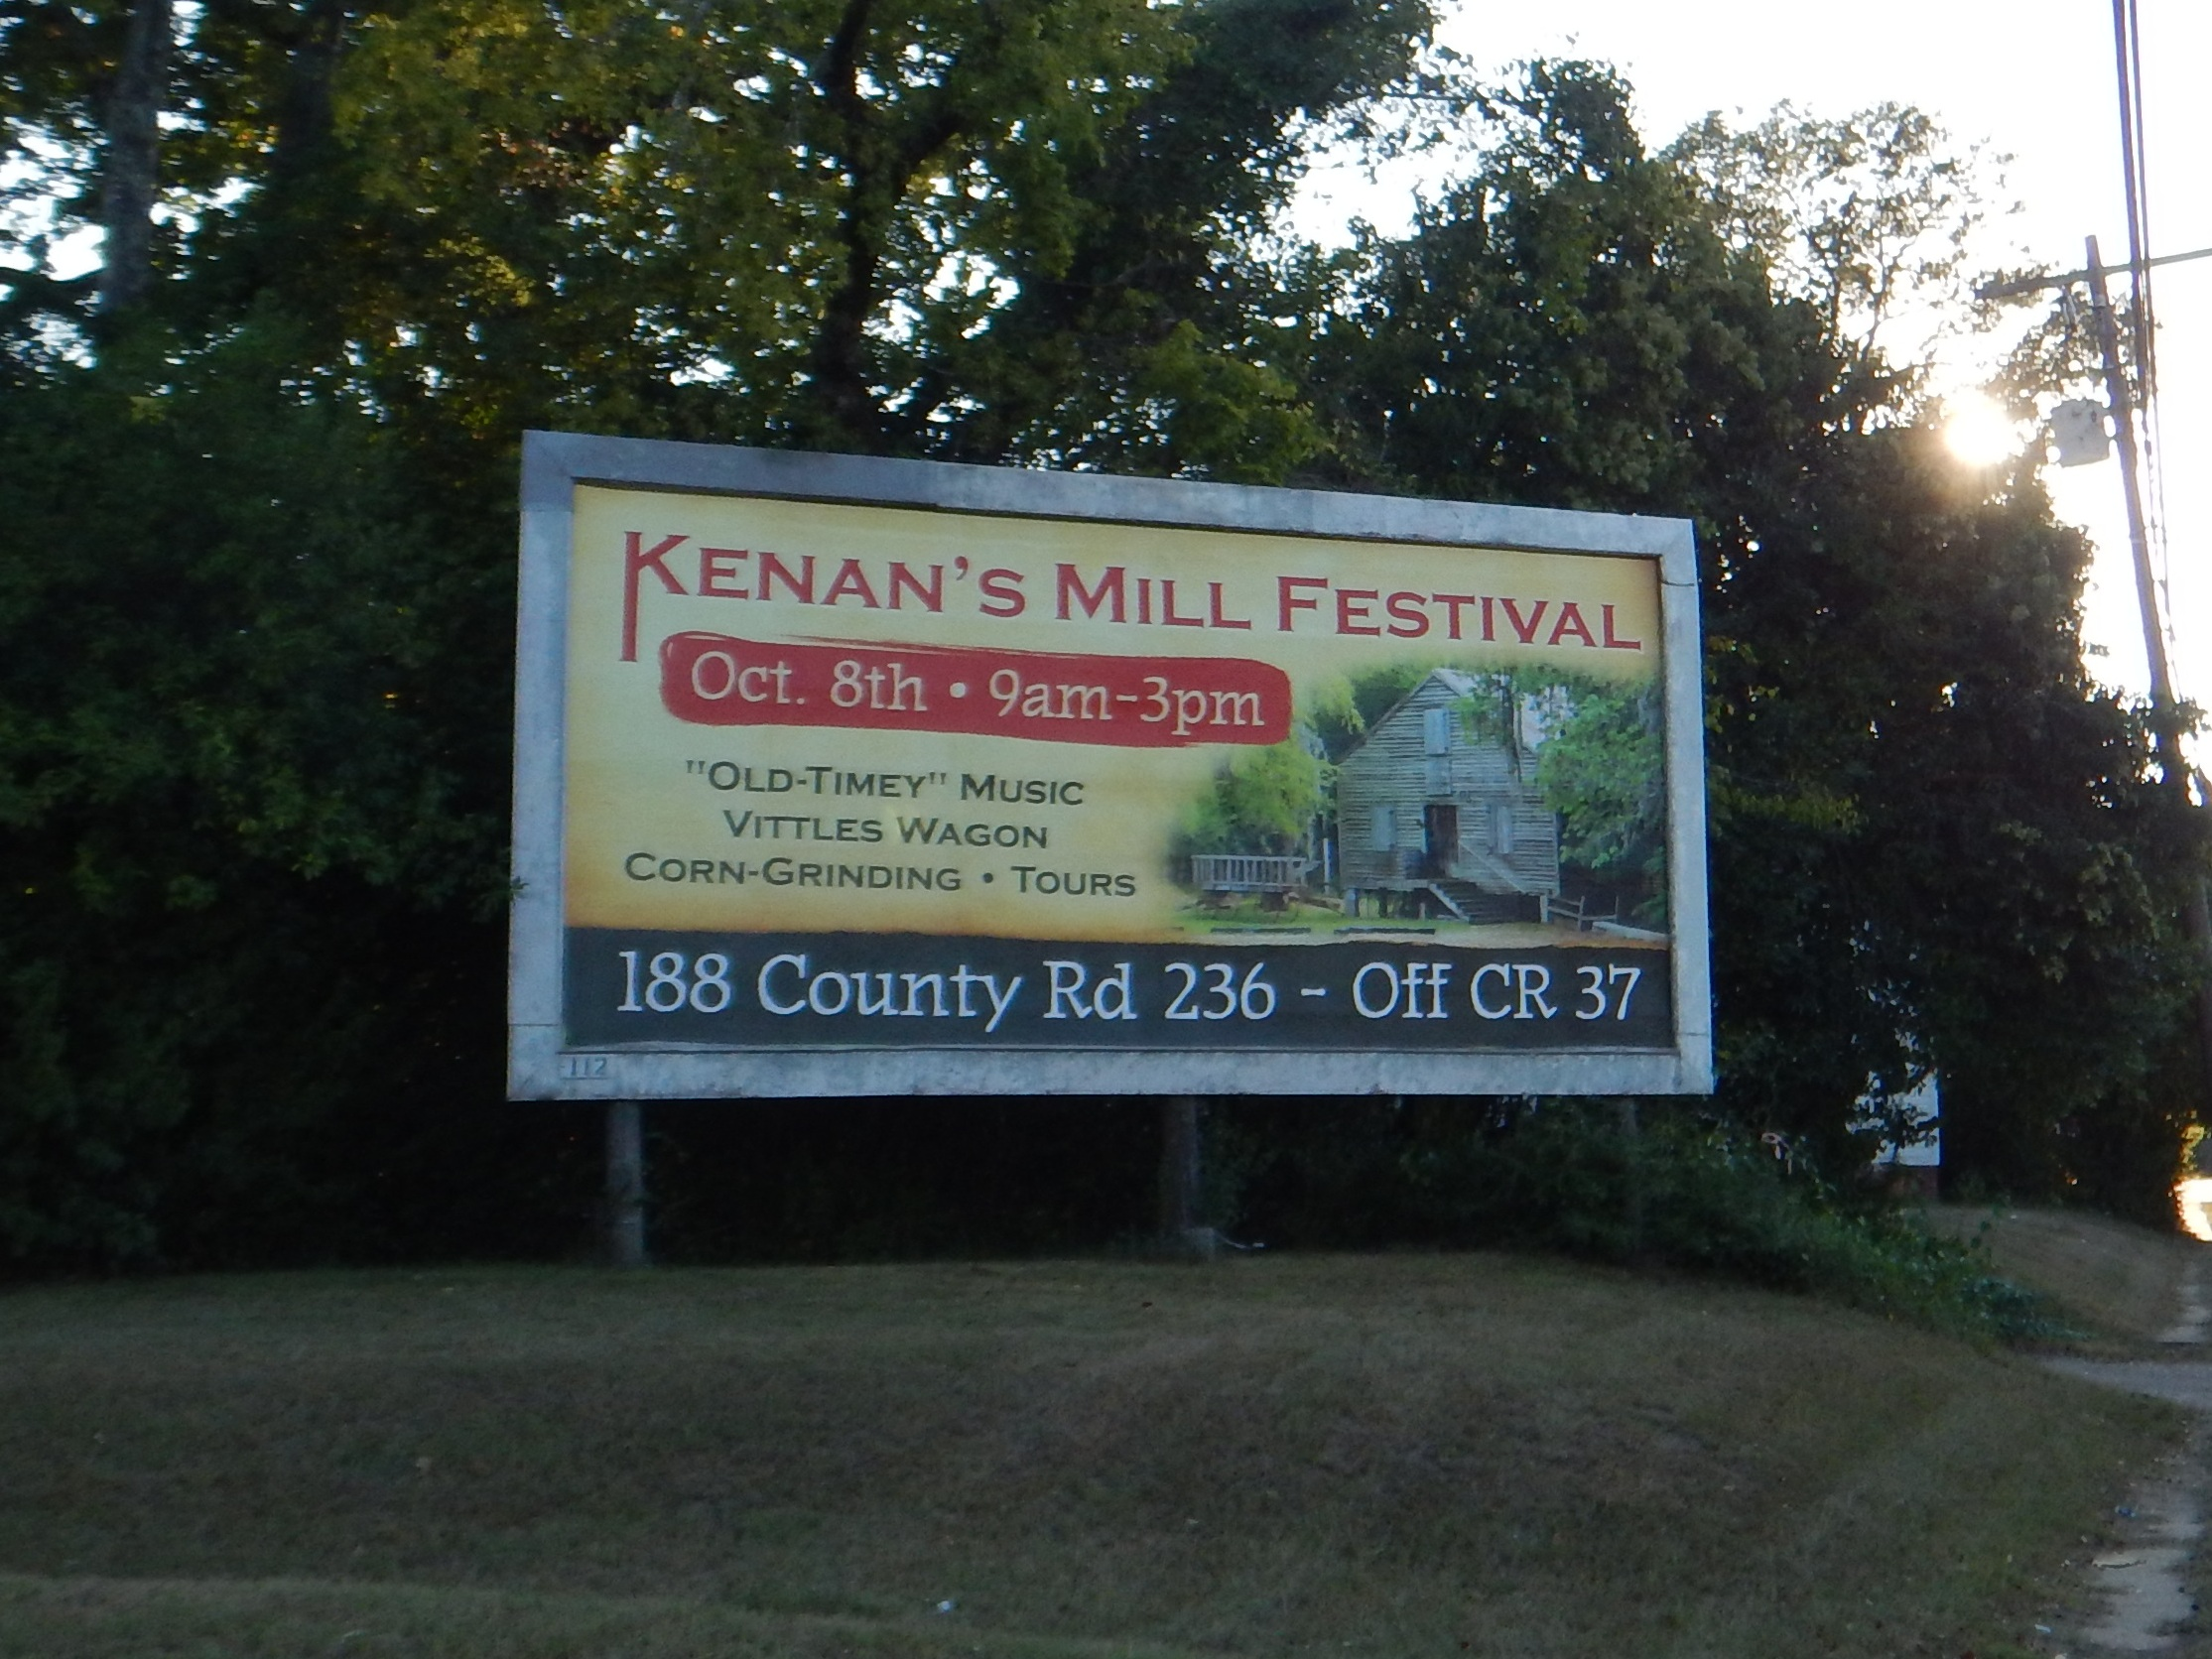 9 15 2016 photo of Kenans Mill billboard from Studio 205